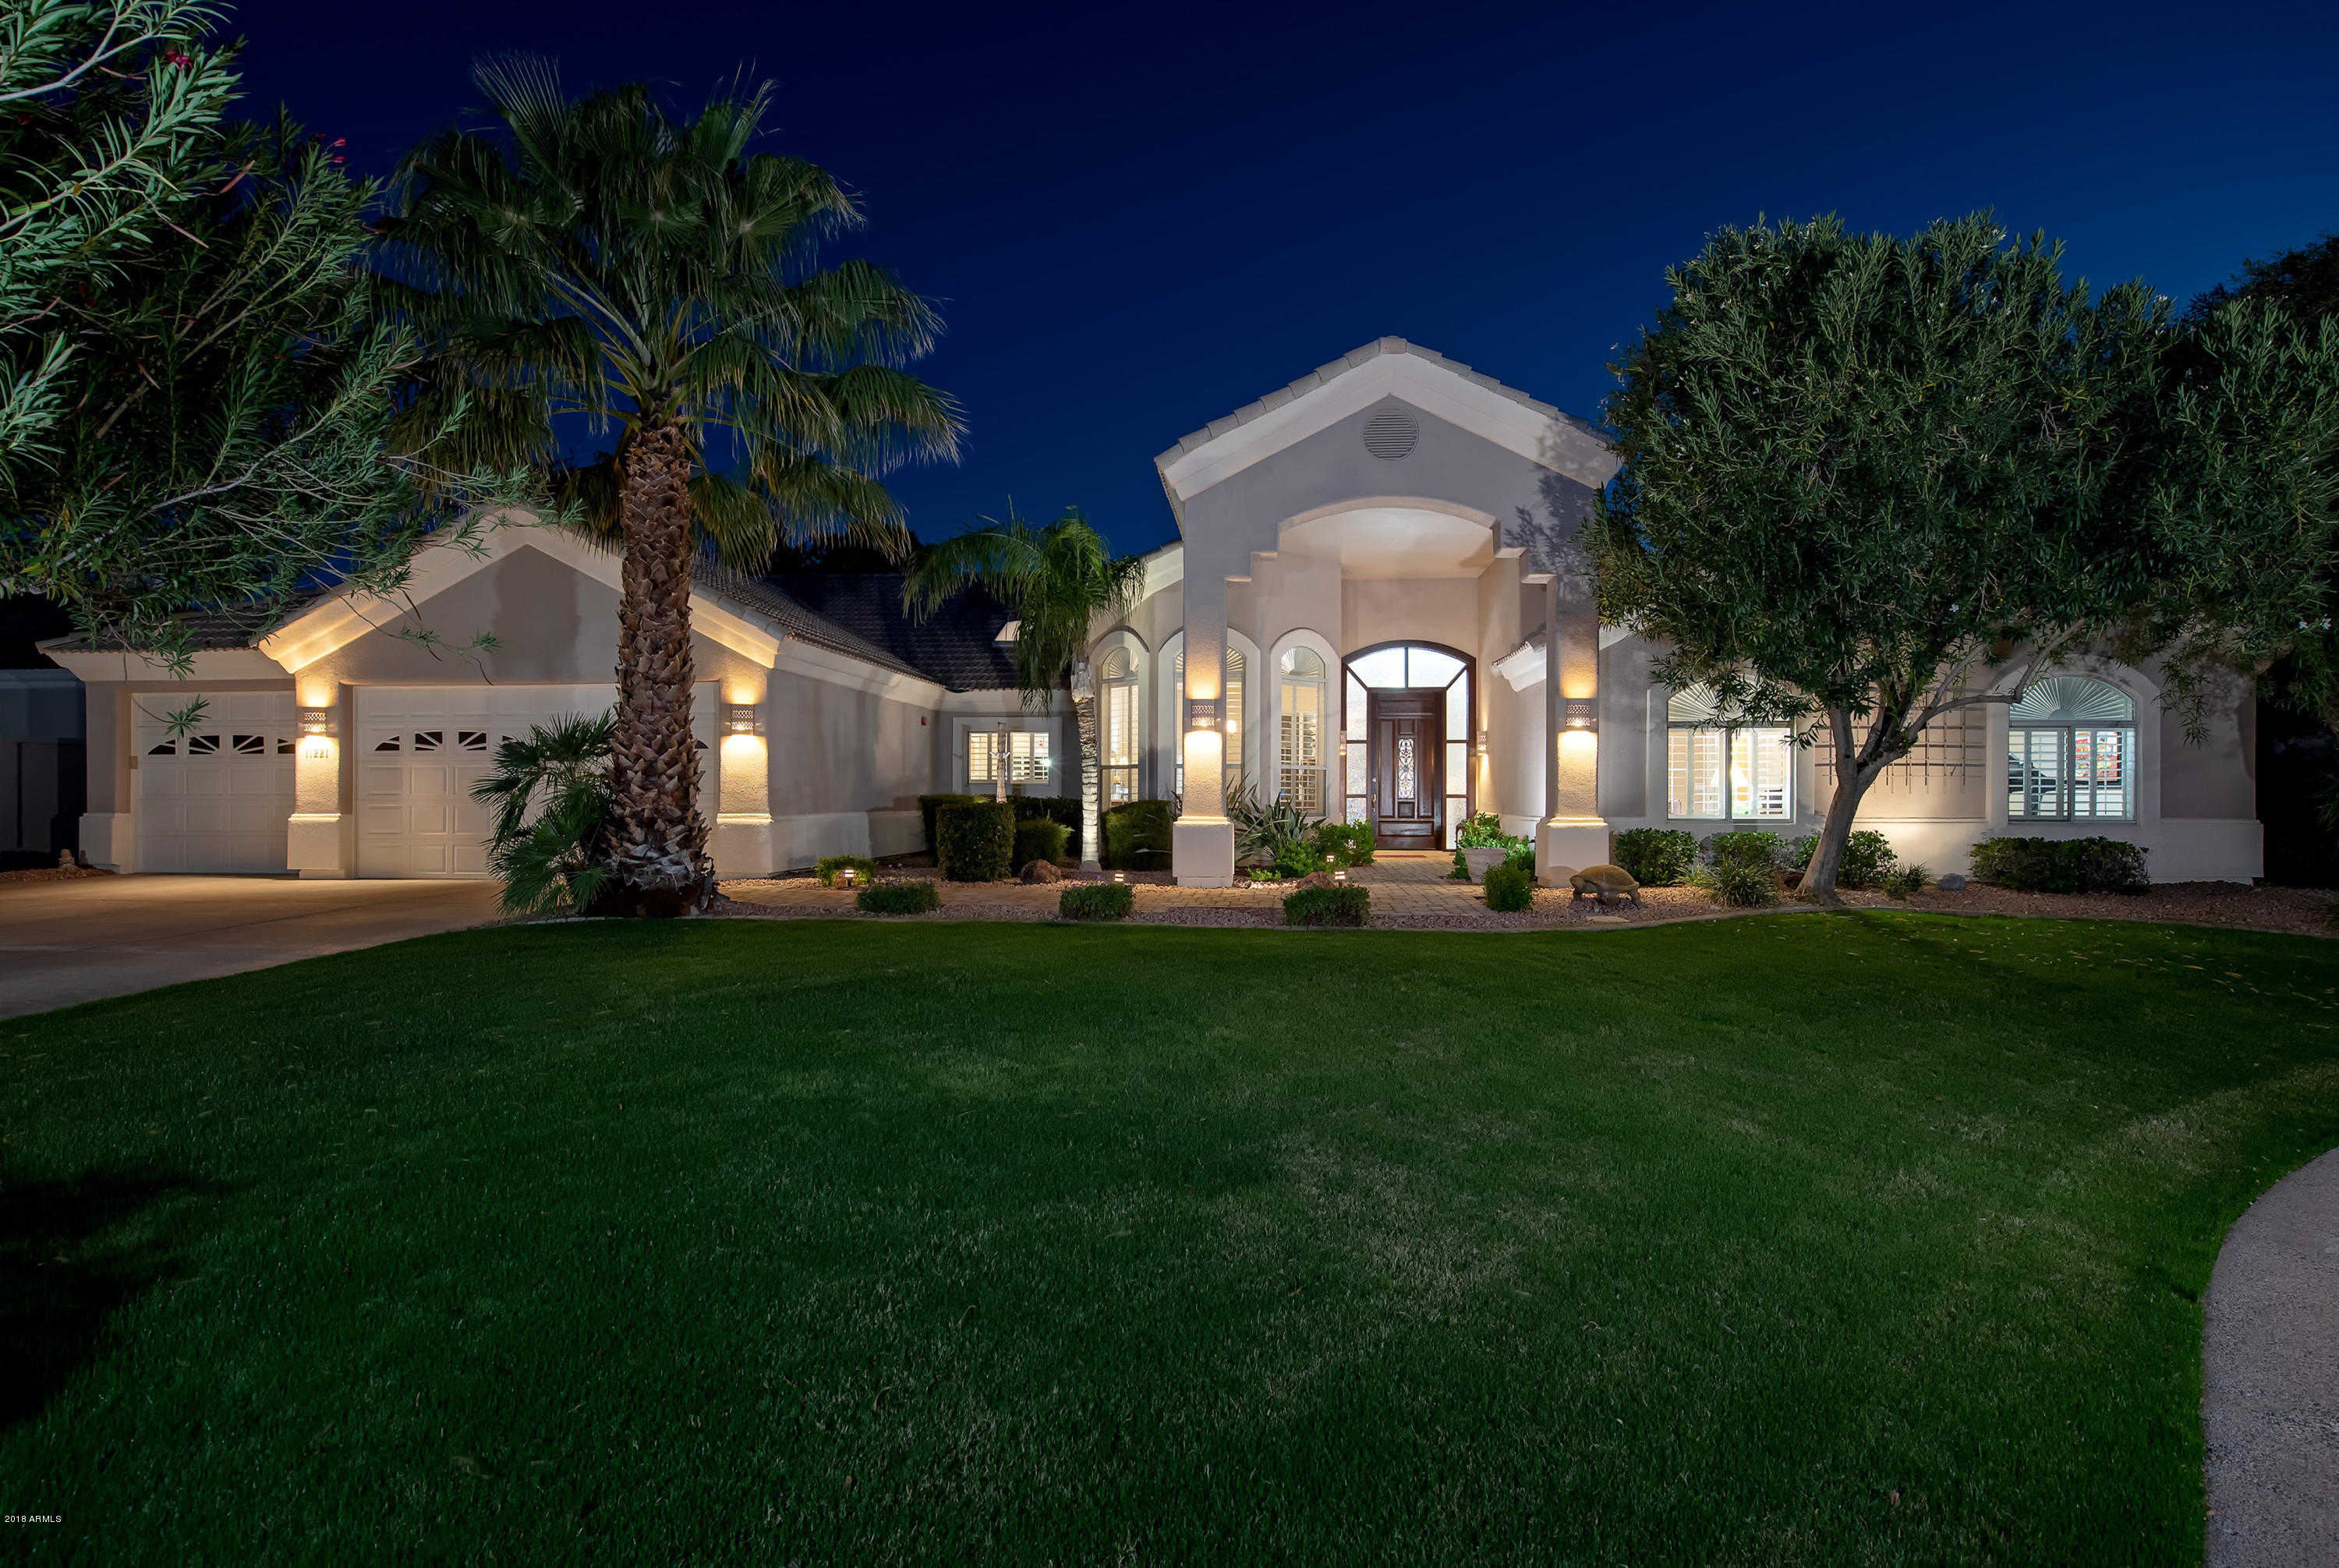 $870,000 - 5Br/3Ba - Home for Sale in Stonegate, The Retreat, Scottsdale